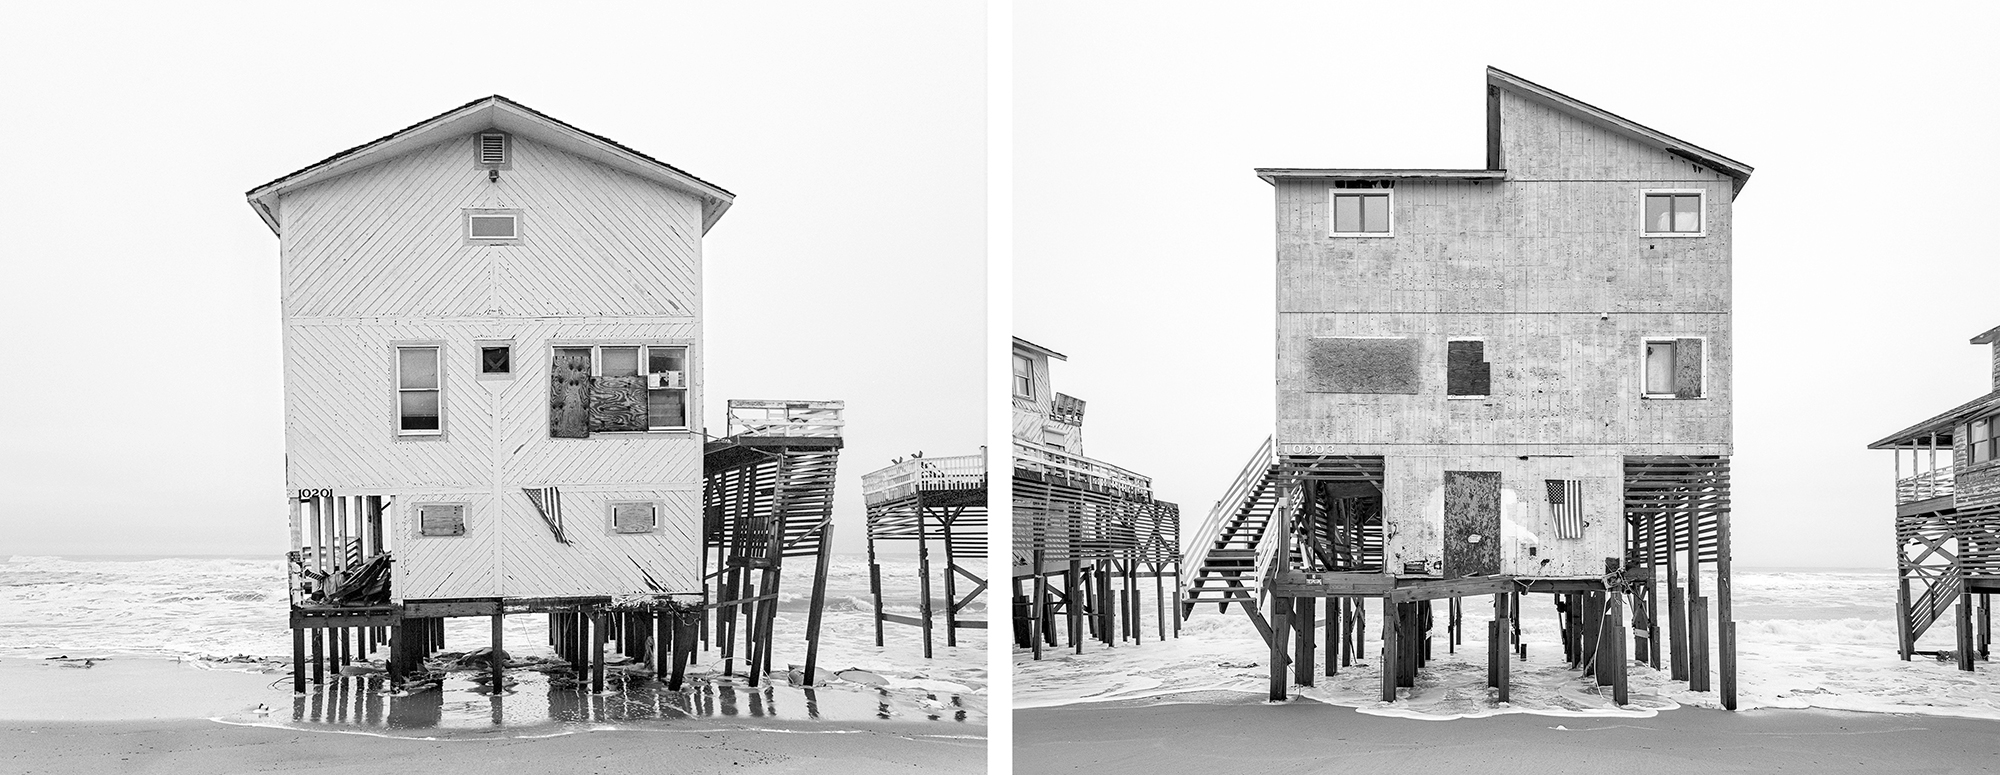 Condemned houses on E Seagull Dr in South Nags Head, NC. December 2014.